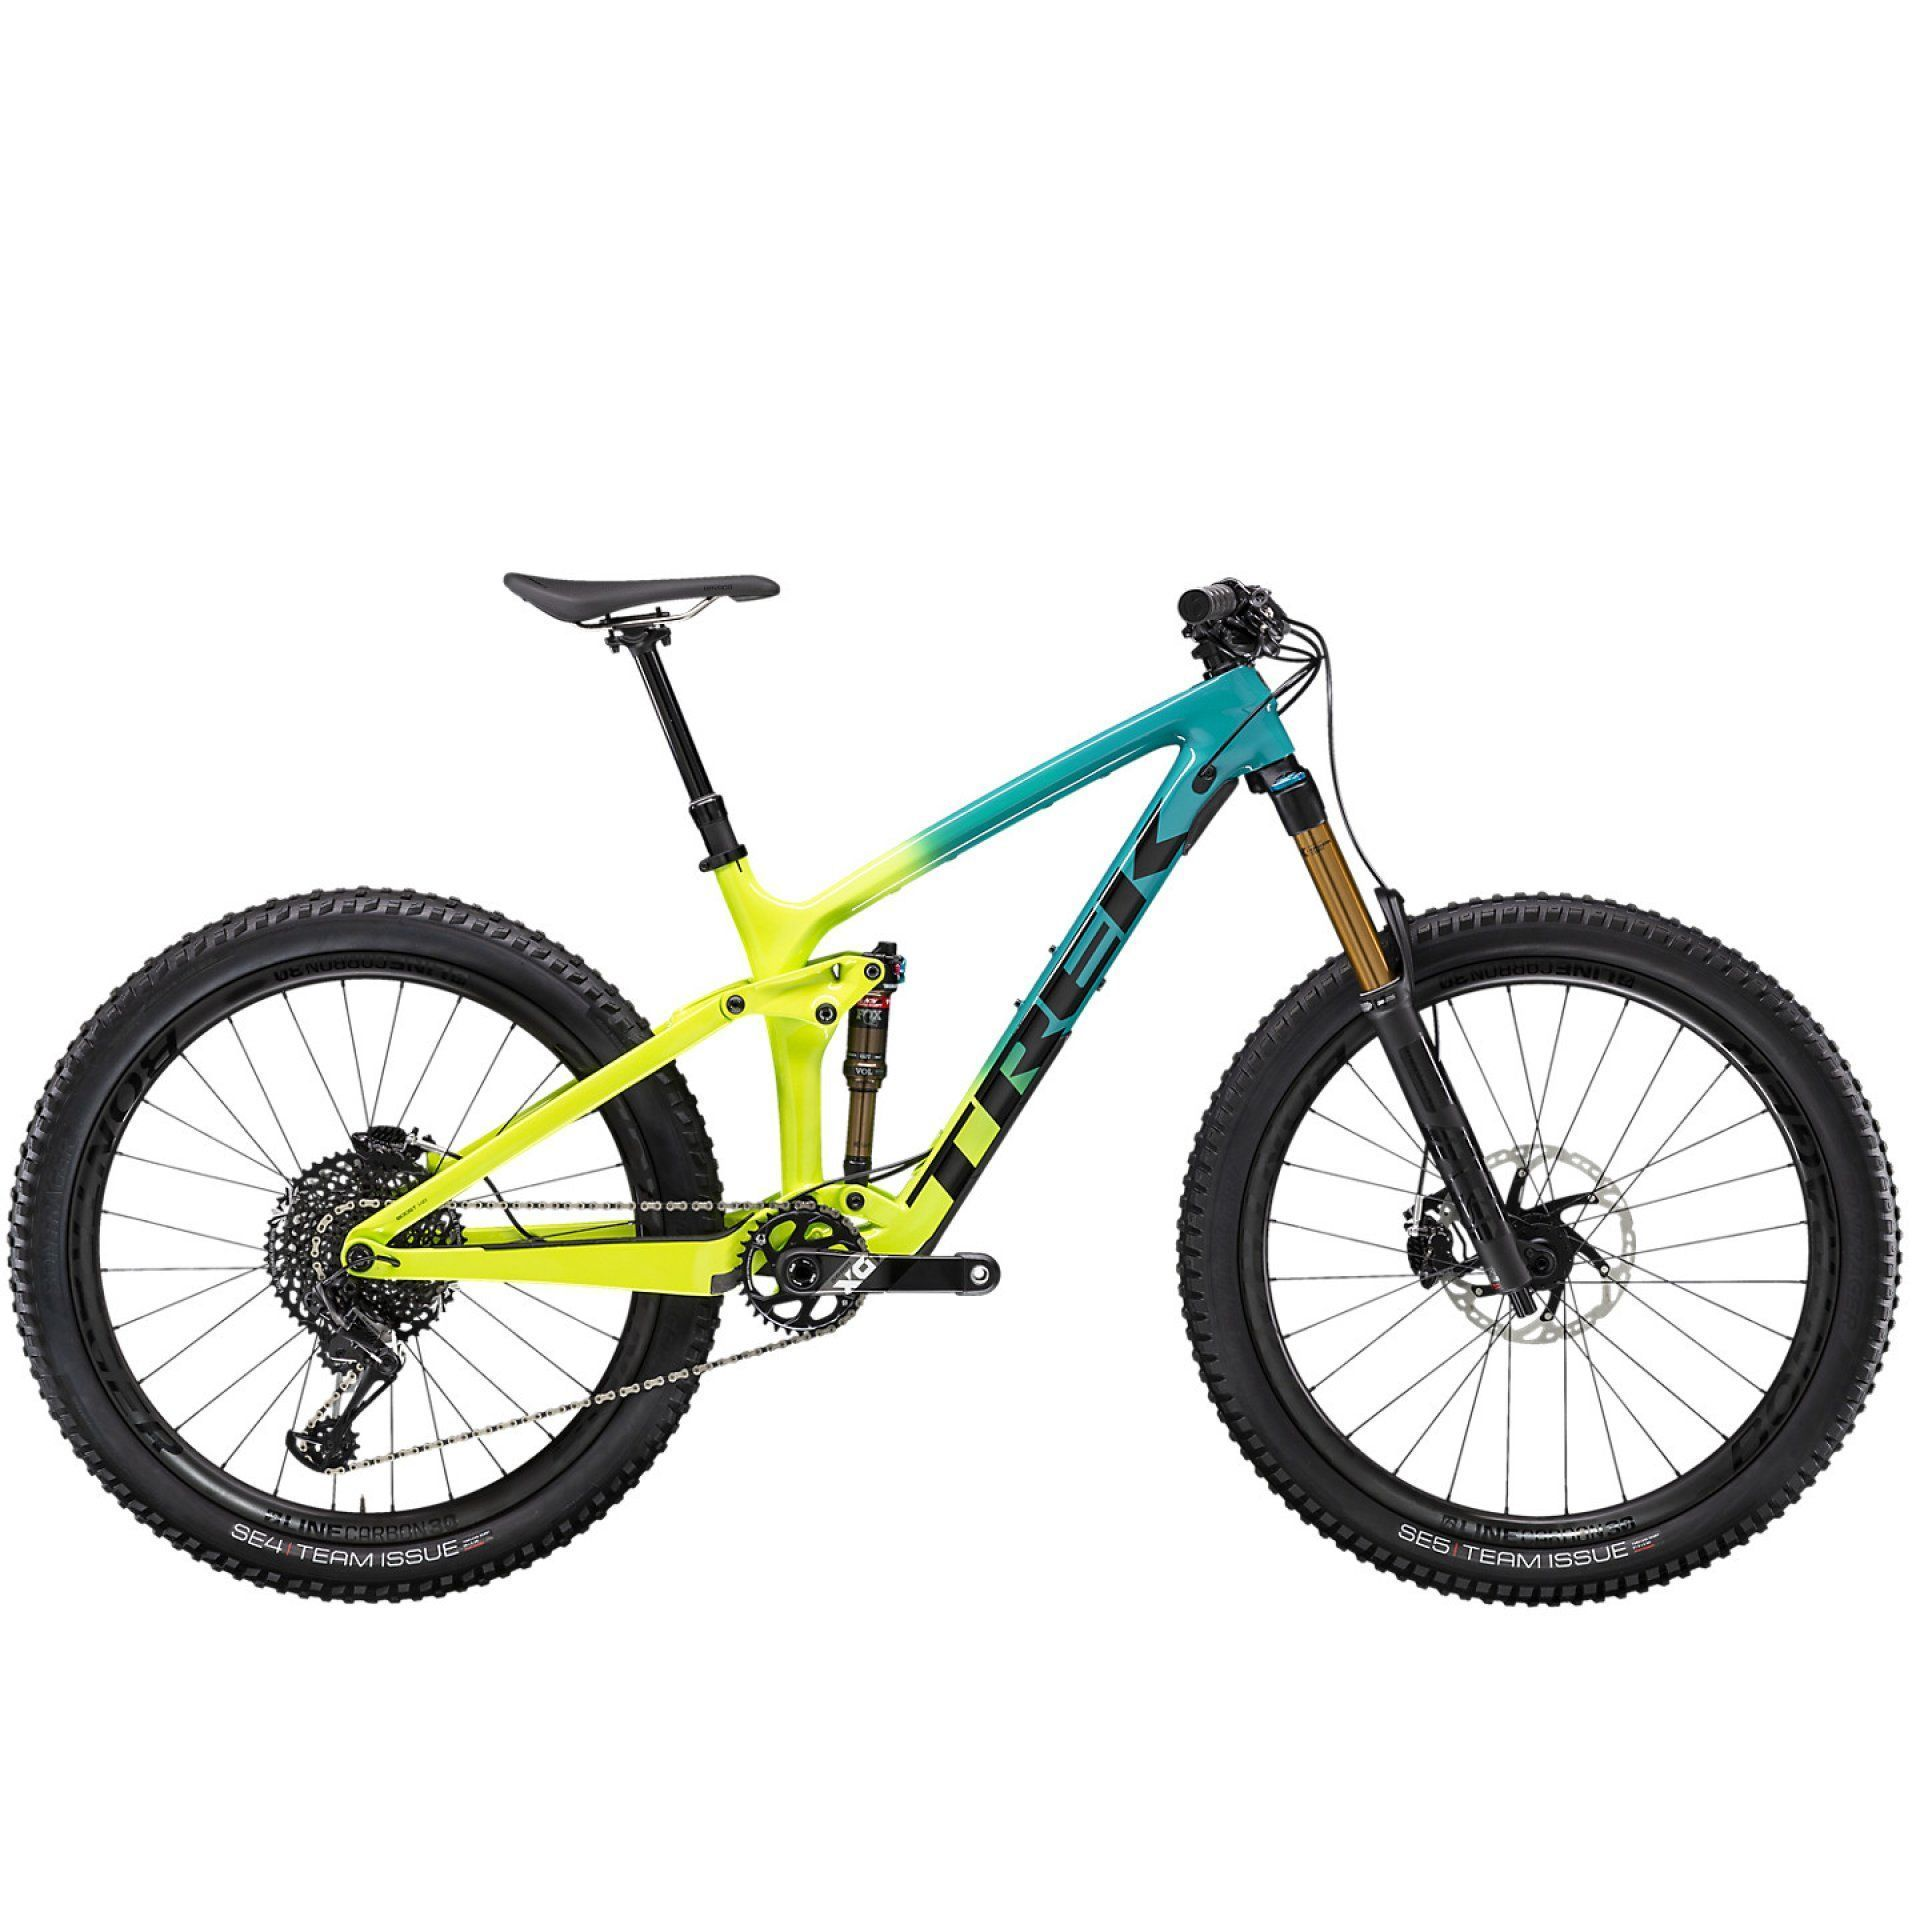 ROWER TREK REMEDY 9.9 TEAL TO VOLT FADE 1